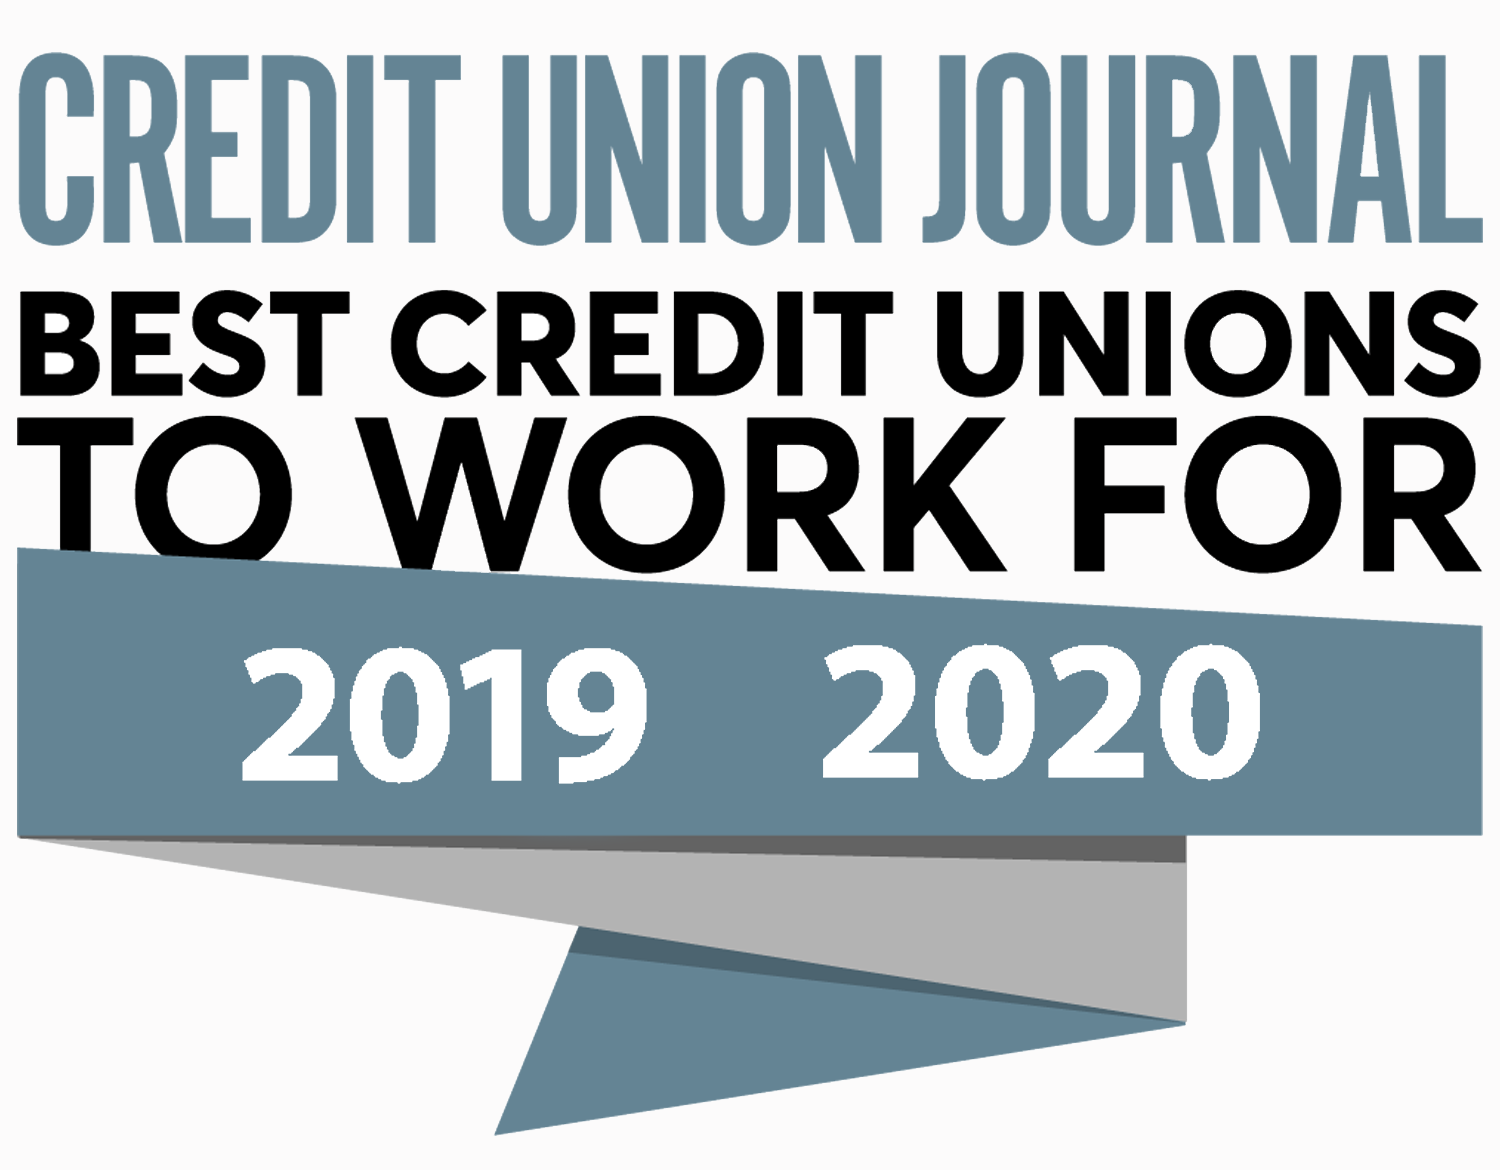 Credit Union Journal - Best Credit Unions to Work for - 2019 & 2020 Winner